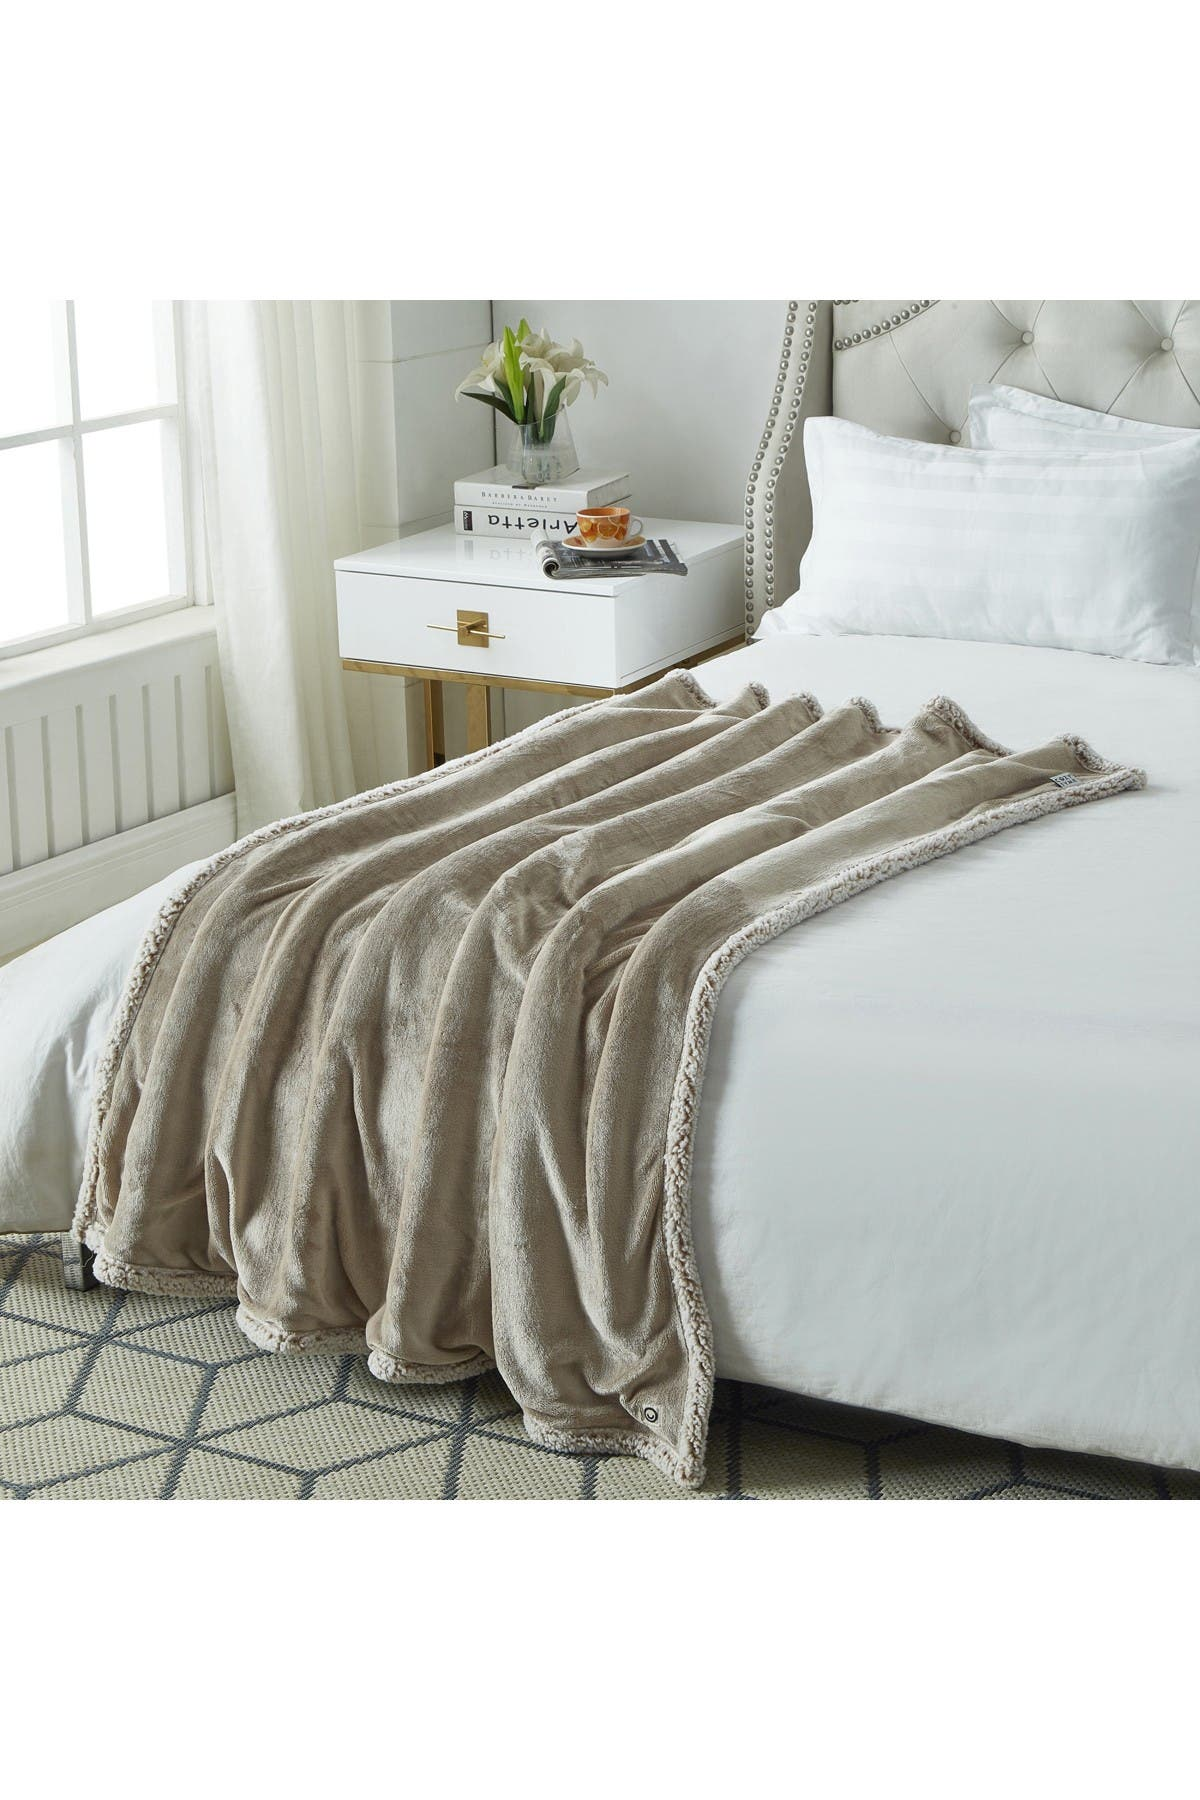 "Image of Inspired Home Cozy Tyme Saleem Flannel Reversible Faux Shearling Throw 50"" x 60"" - Taupe"